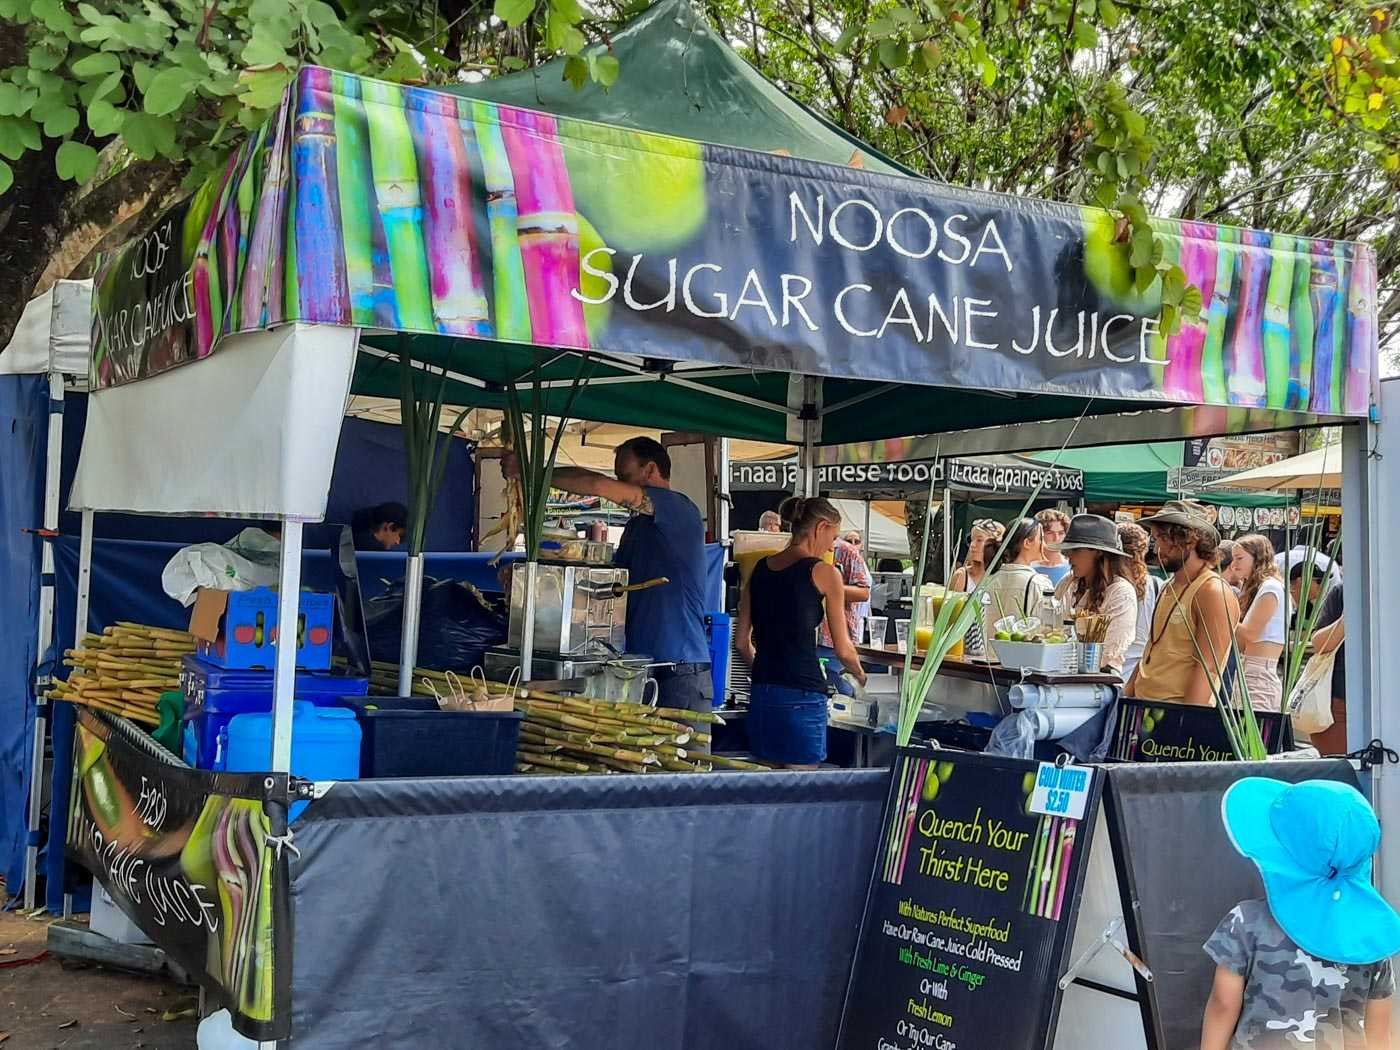 A stall at the Eumundi Markets selling 'Noosa Sugar Cane Juice'.